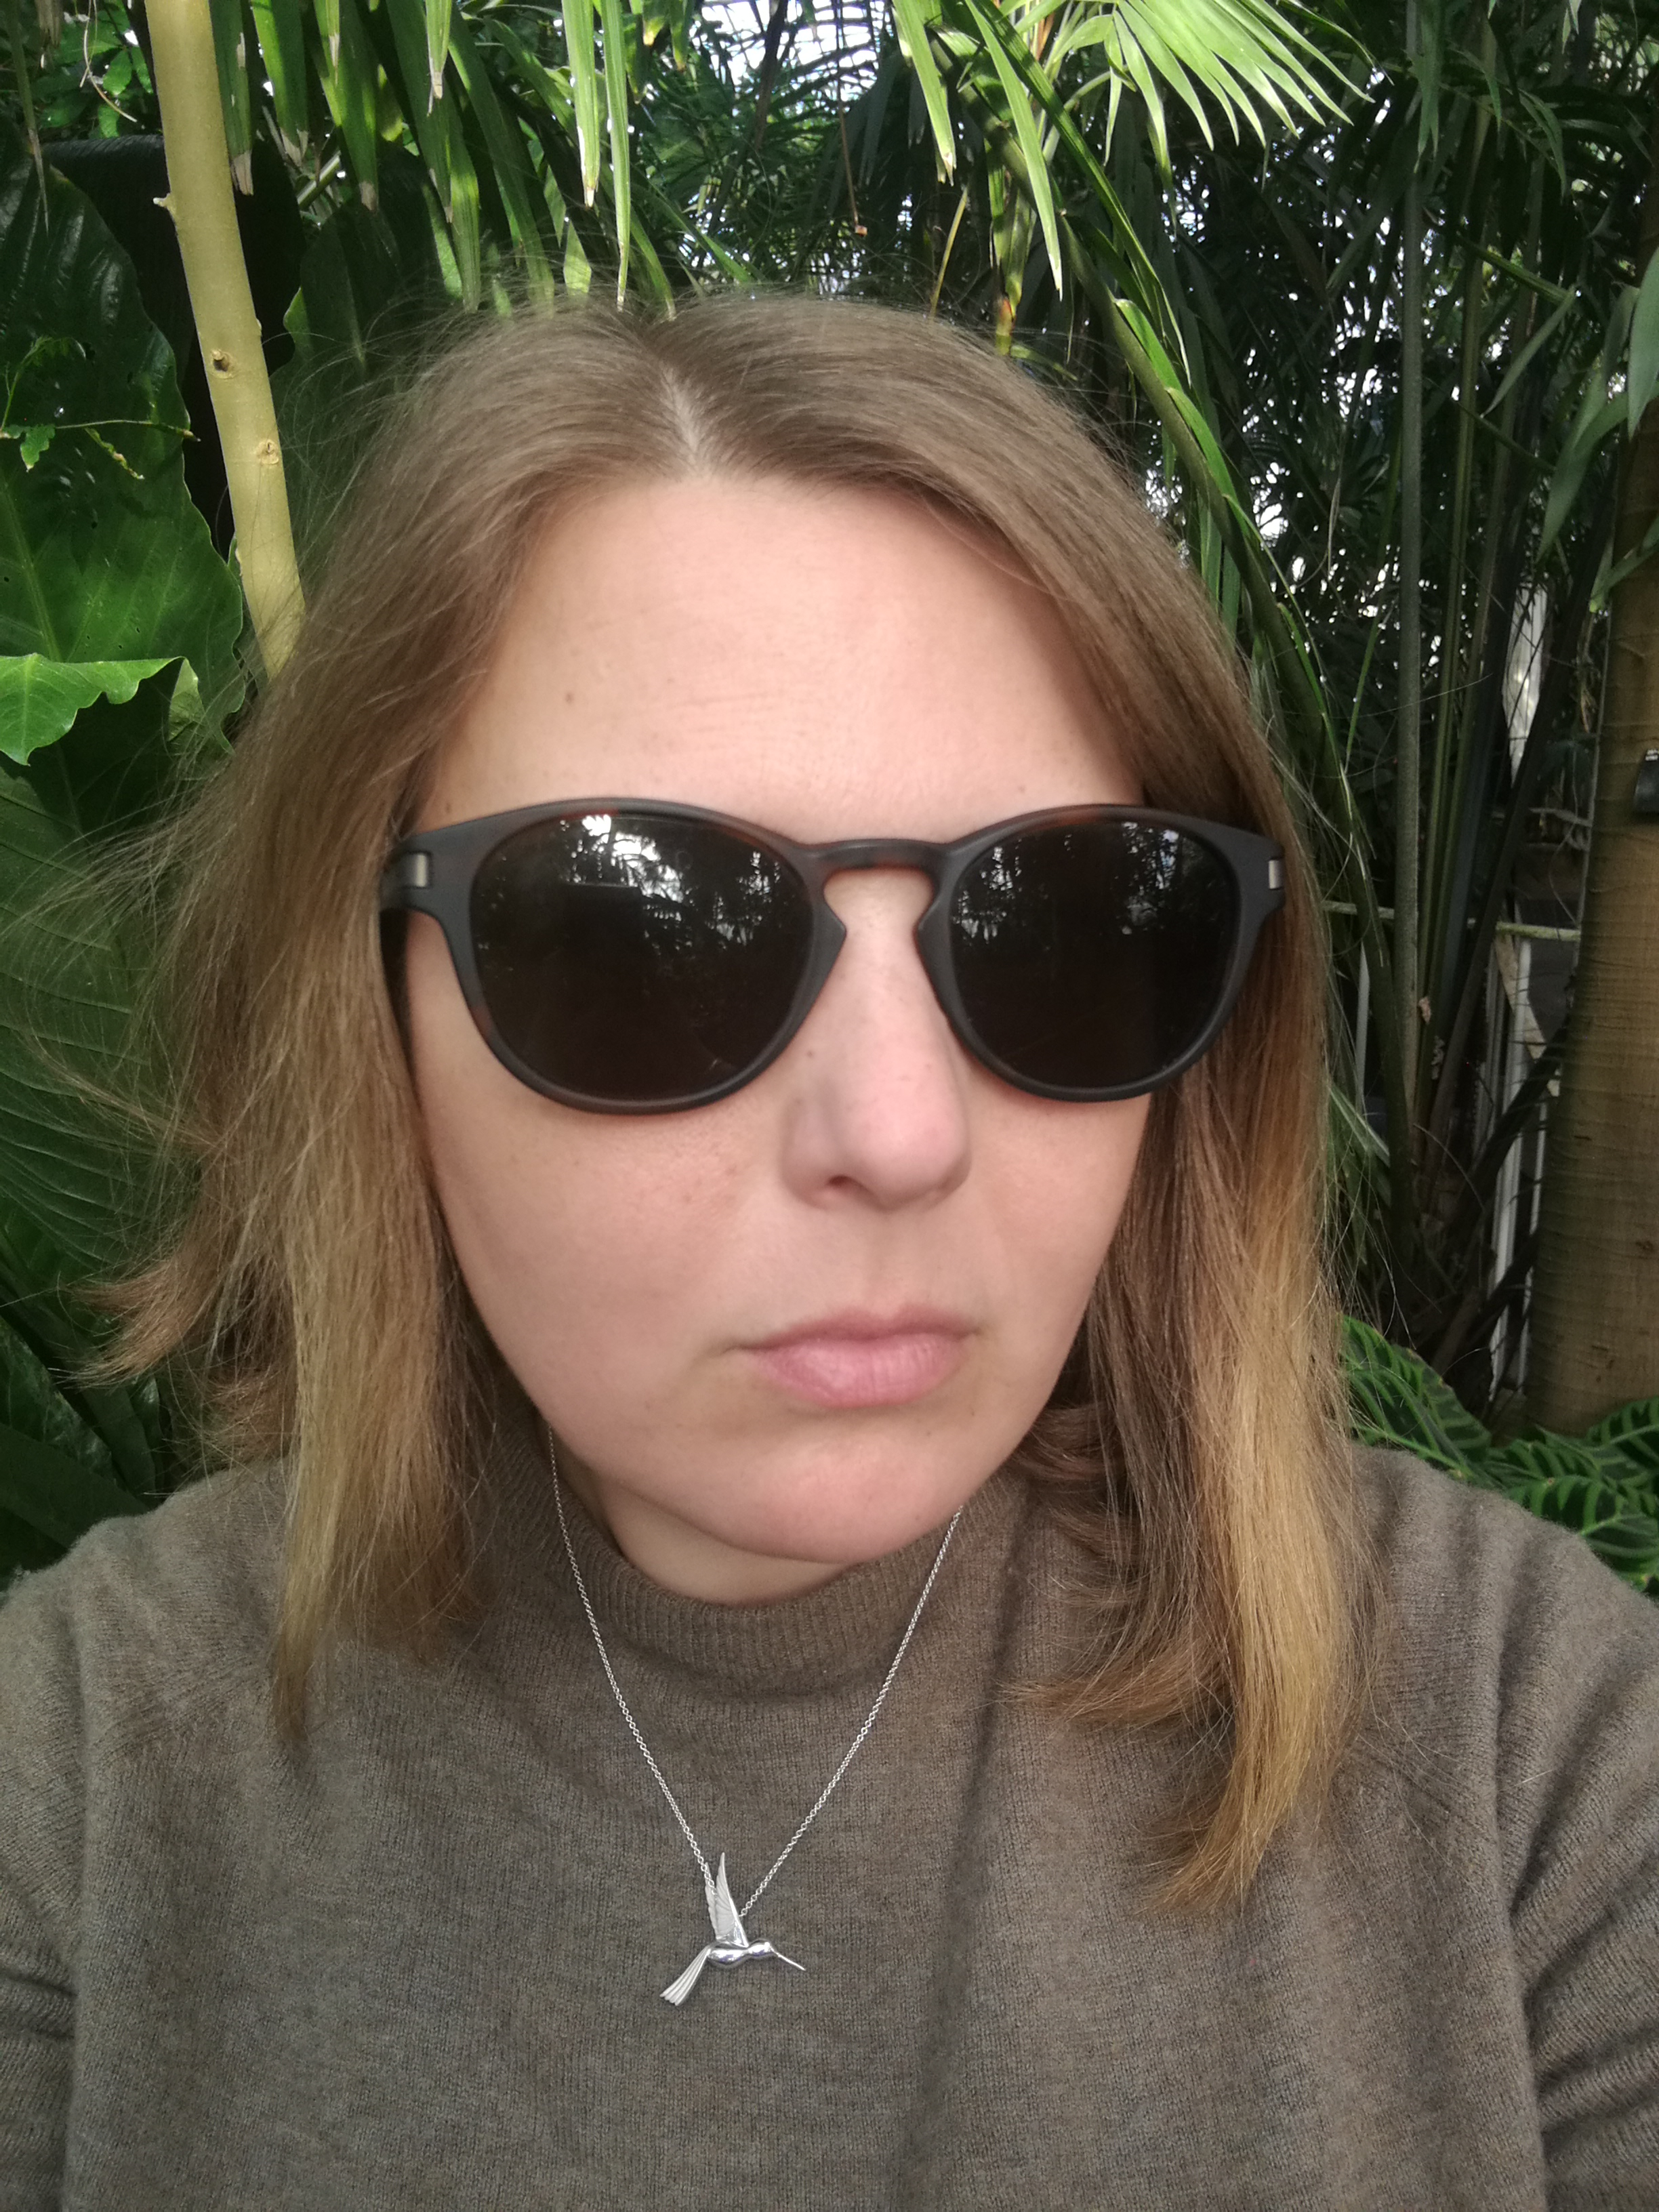 Photo of me wearing Oakley sunglasses, a thrifted J Crew jumper in a mossy brown and wearing the silver hummingbird pendant. My hair's a bit frizzy!